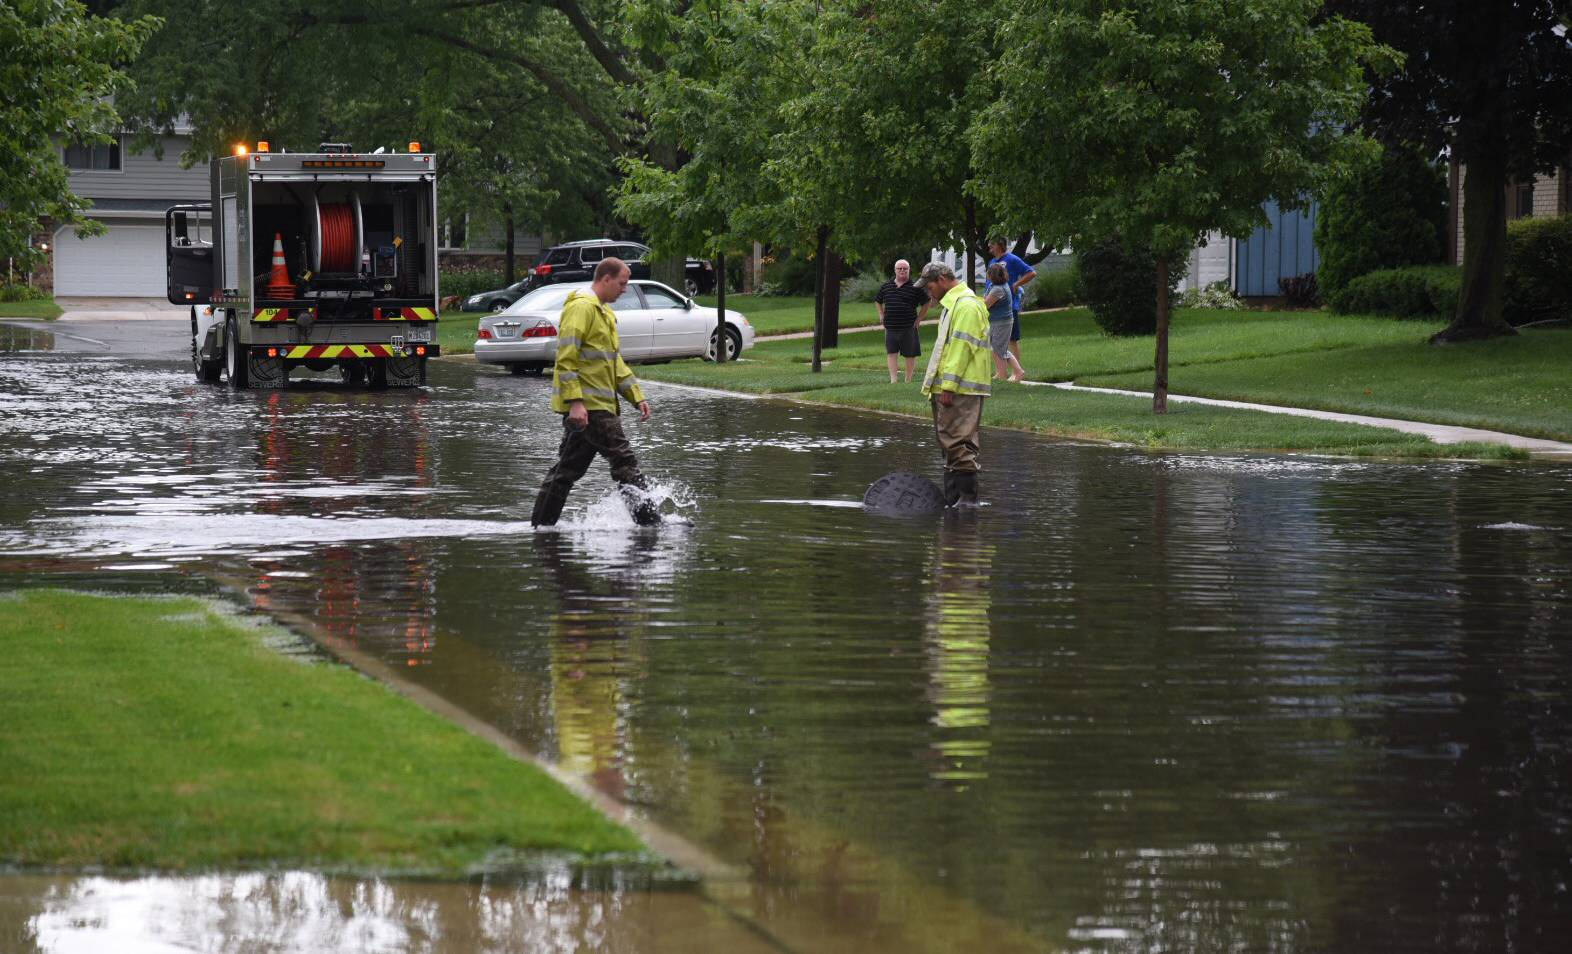 City of Elgin public works employees work to clear drains on Jane Drive on Wednesday morning after drenching rains caused flooding in streets and houses.